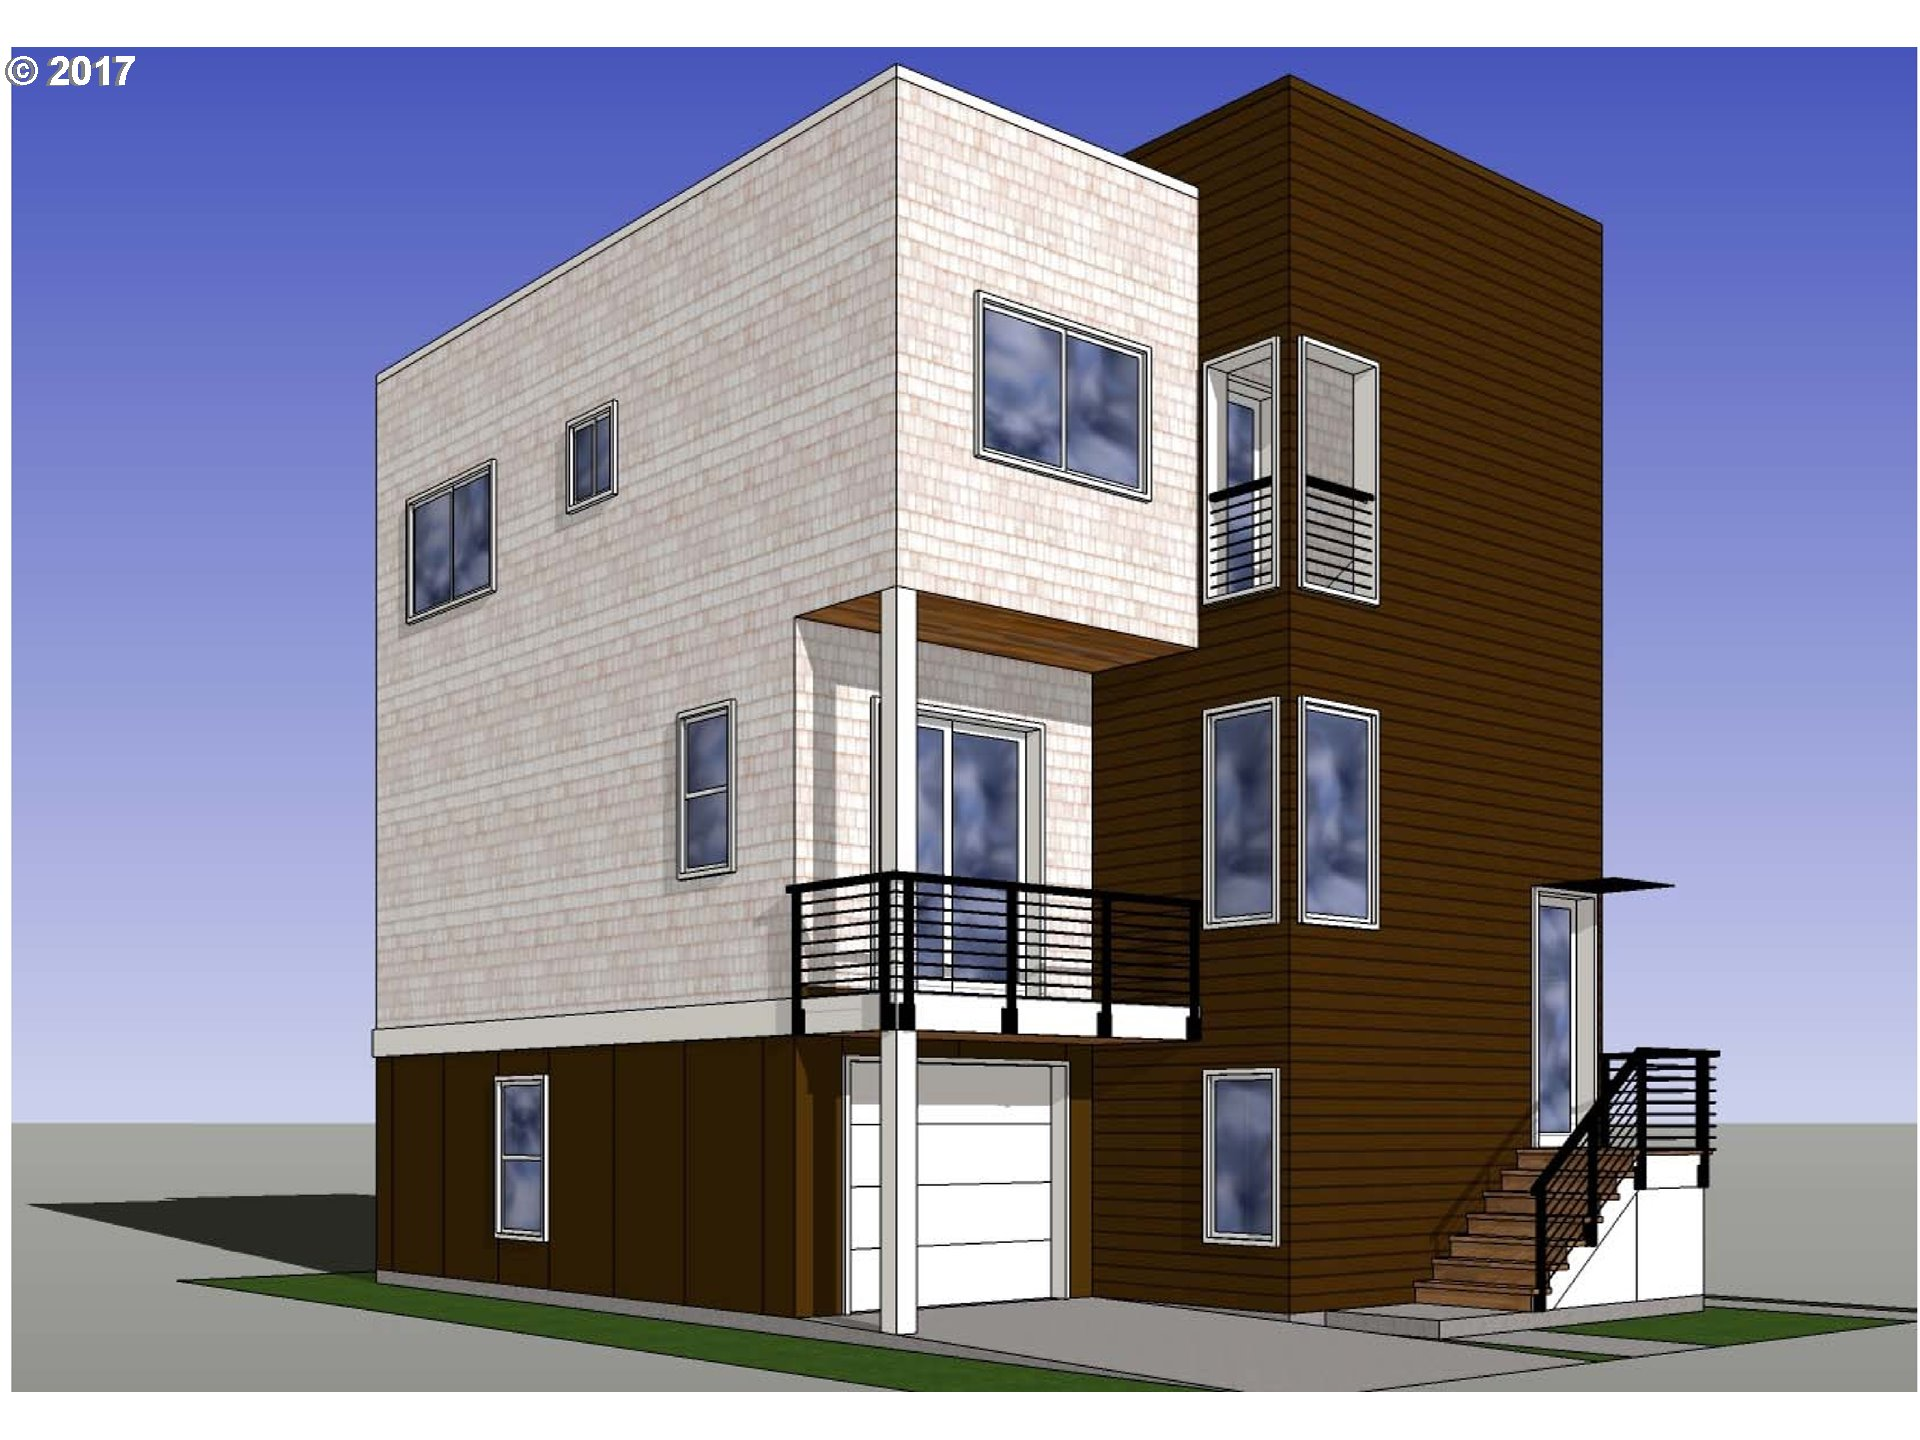 Biker's Paradise score of 92 - Modern living in Humboldt with studio ADU for extended family or added income.  Est completion 8/15 -bike/walk to parks and N Mississippi cafes, restaurants, shopping. Open concept living features H/W floors, hi ceilings, gas FP, dining area and kitchen with eat-in island, quartz counters, SS appliances. ADU has concrete floors & outside entrance. Super cool rooftop deck for outdoor entertaining. No Sign